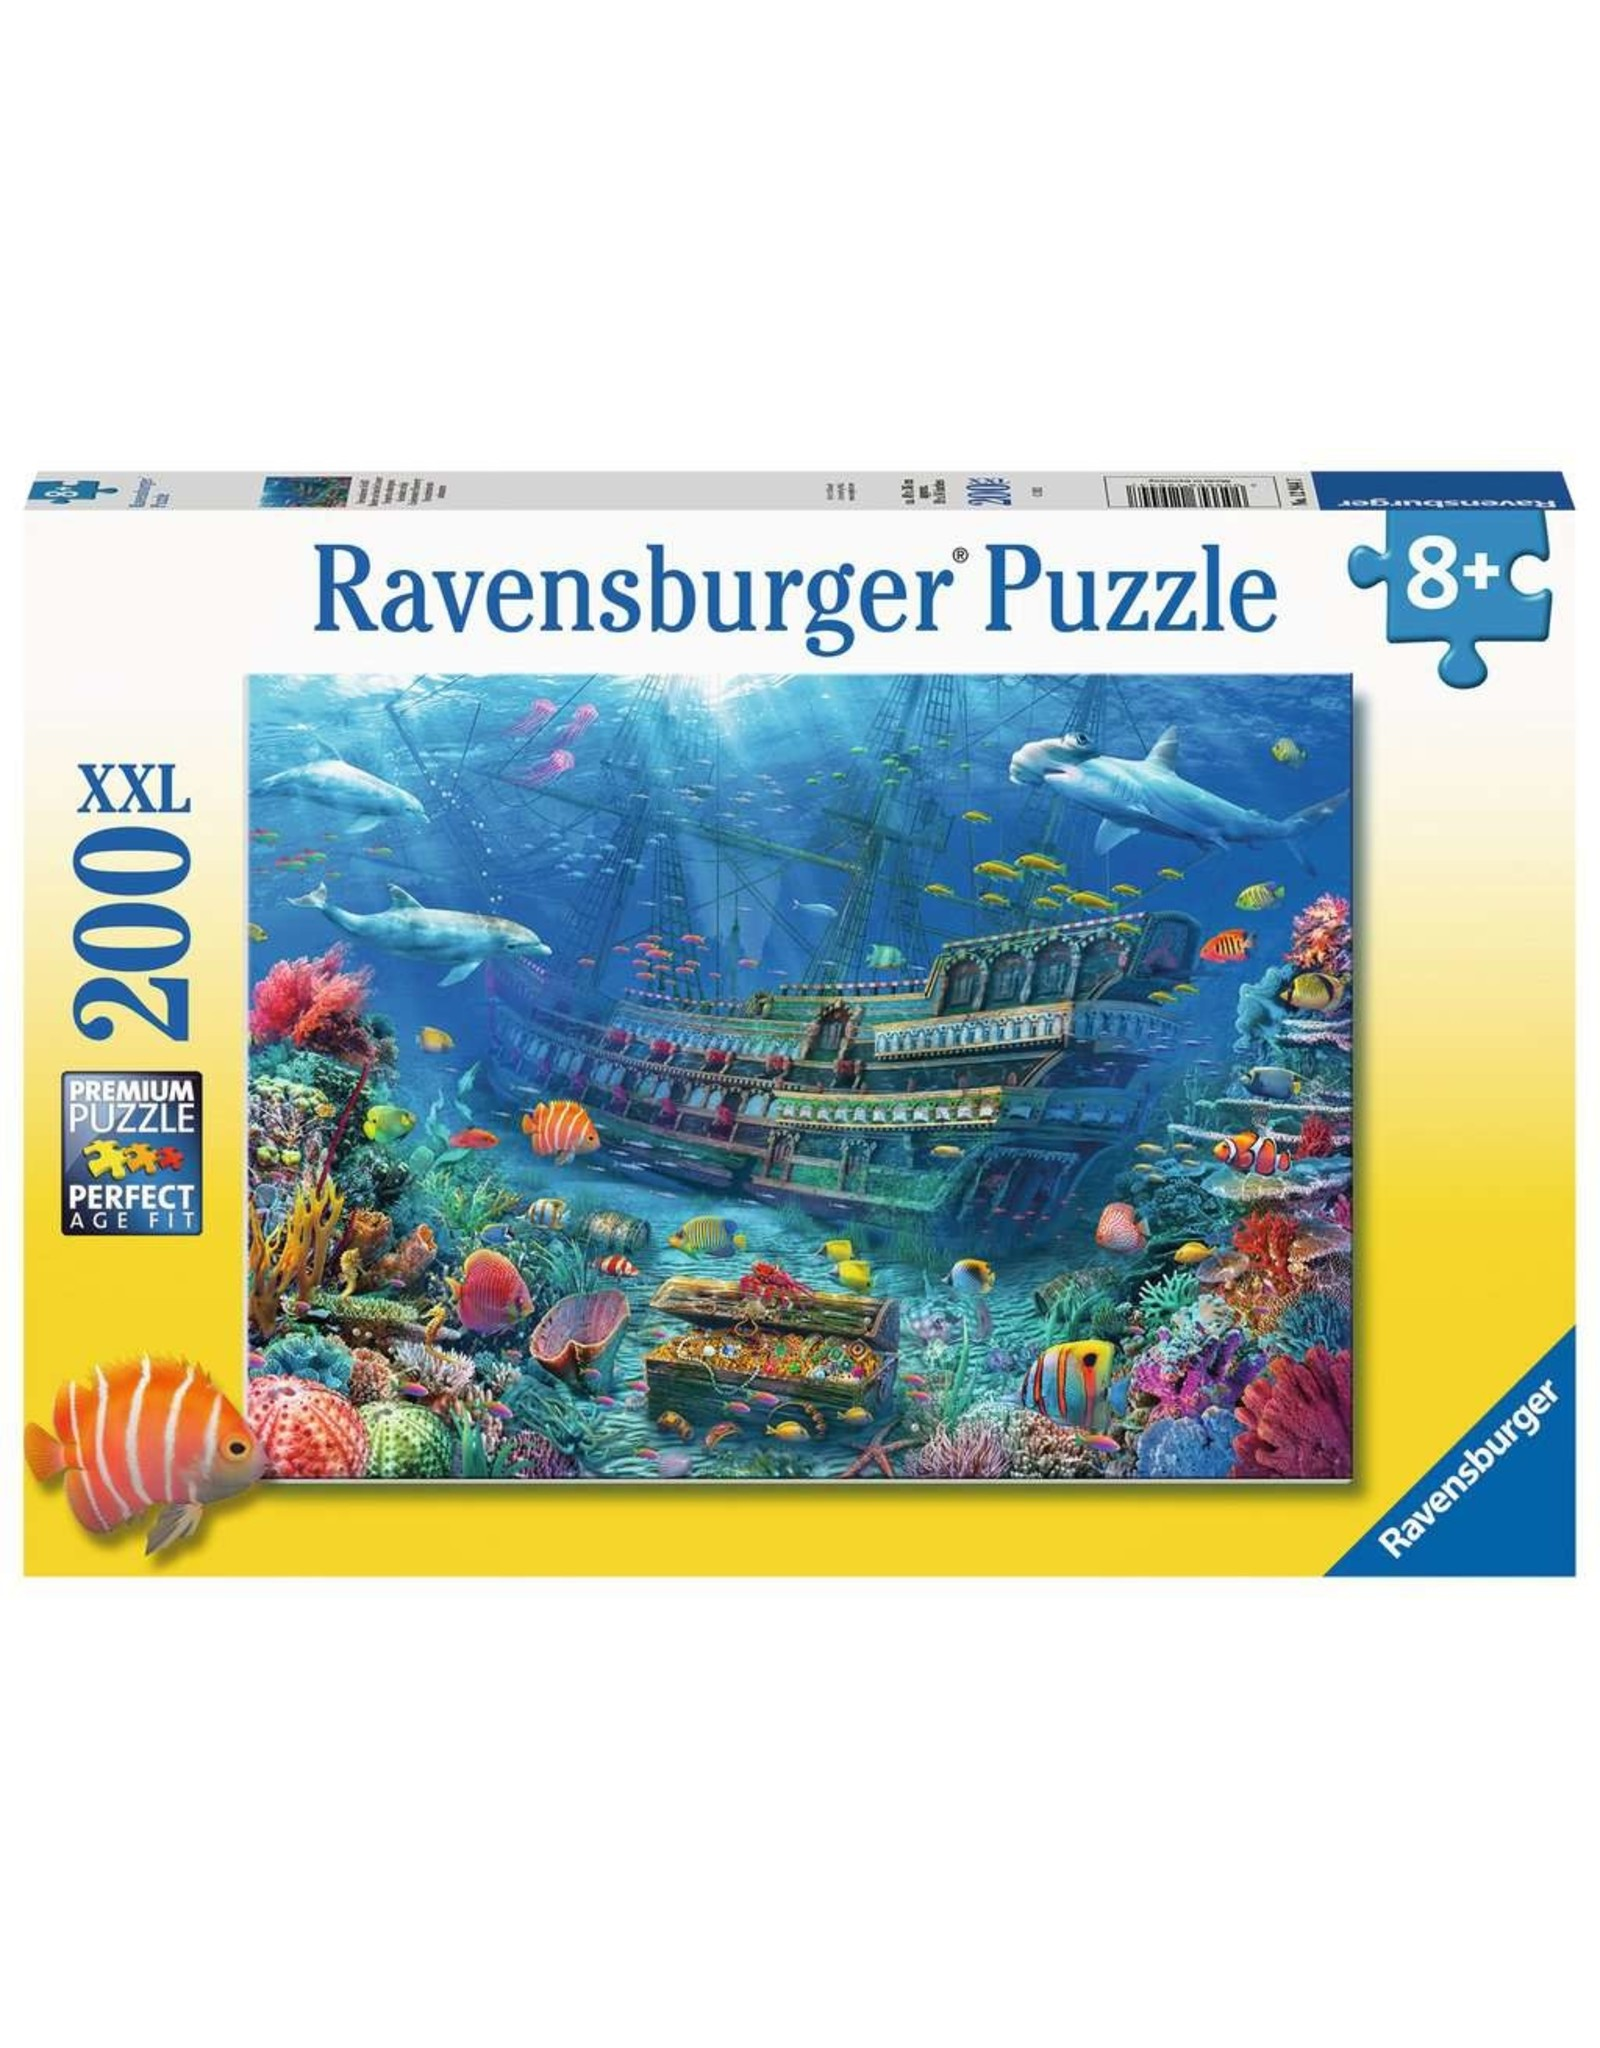 Ravensburger 200 pcs. Underwater Discovery Puzzle